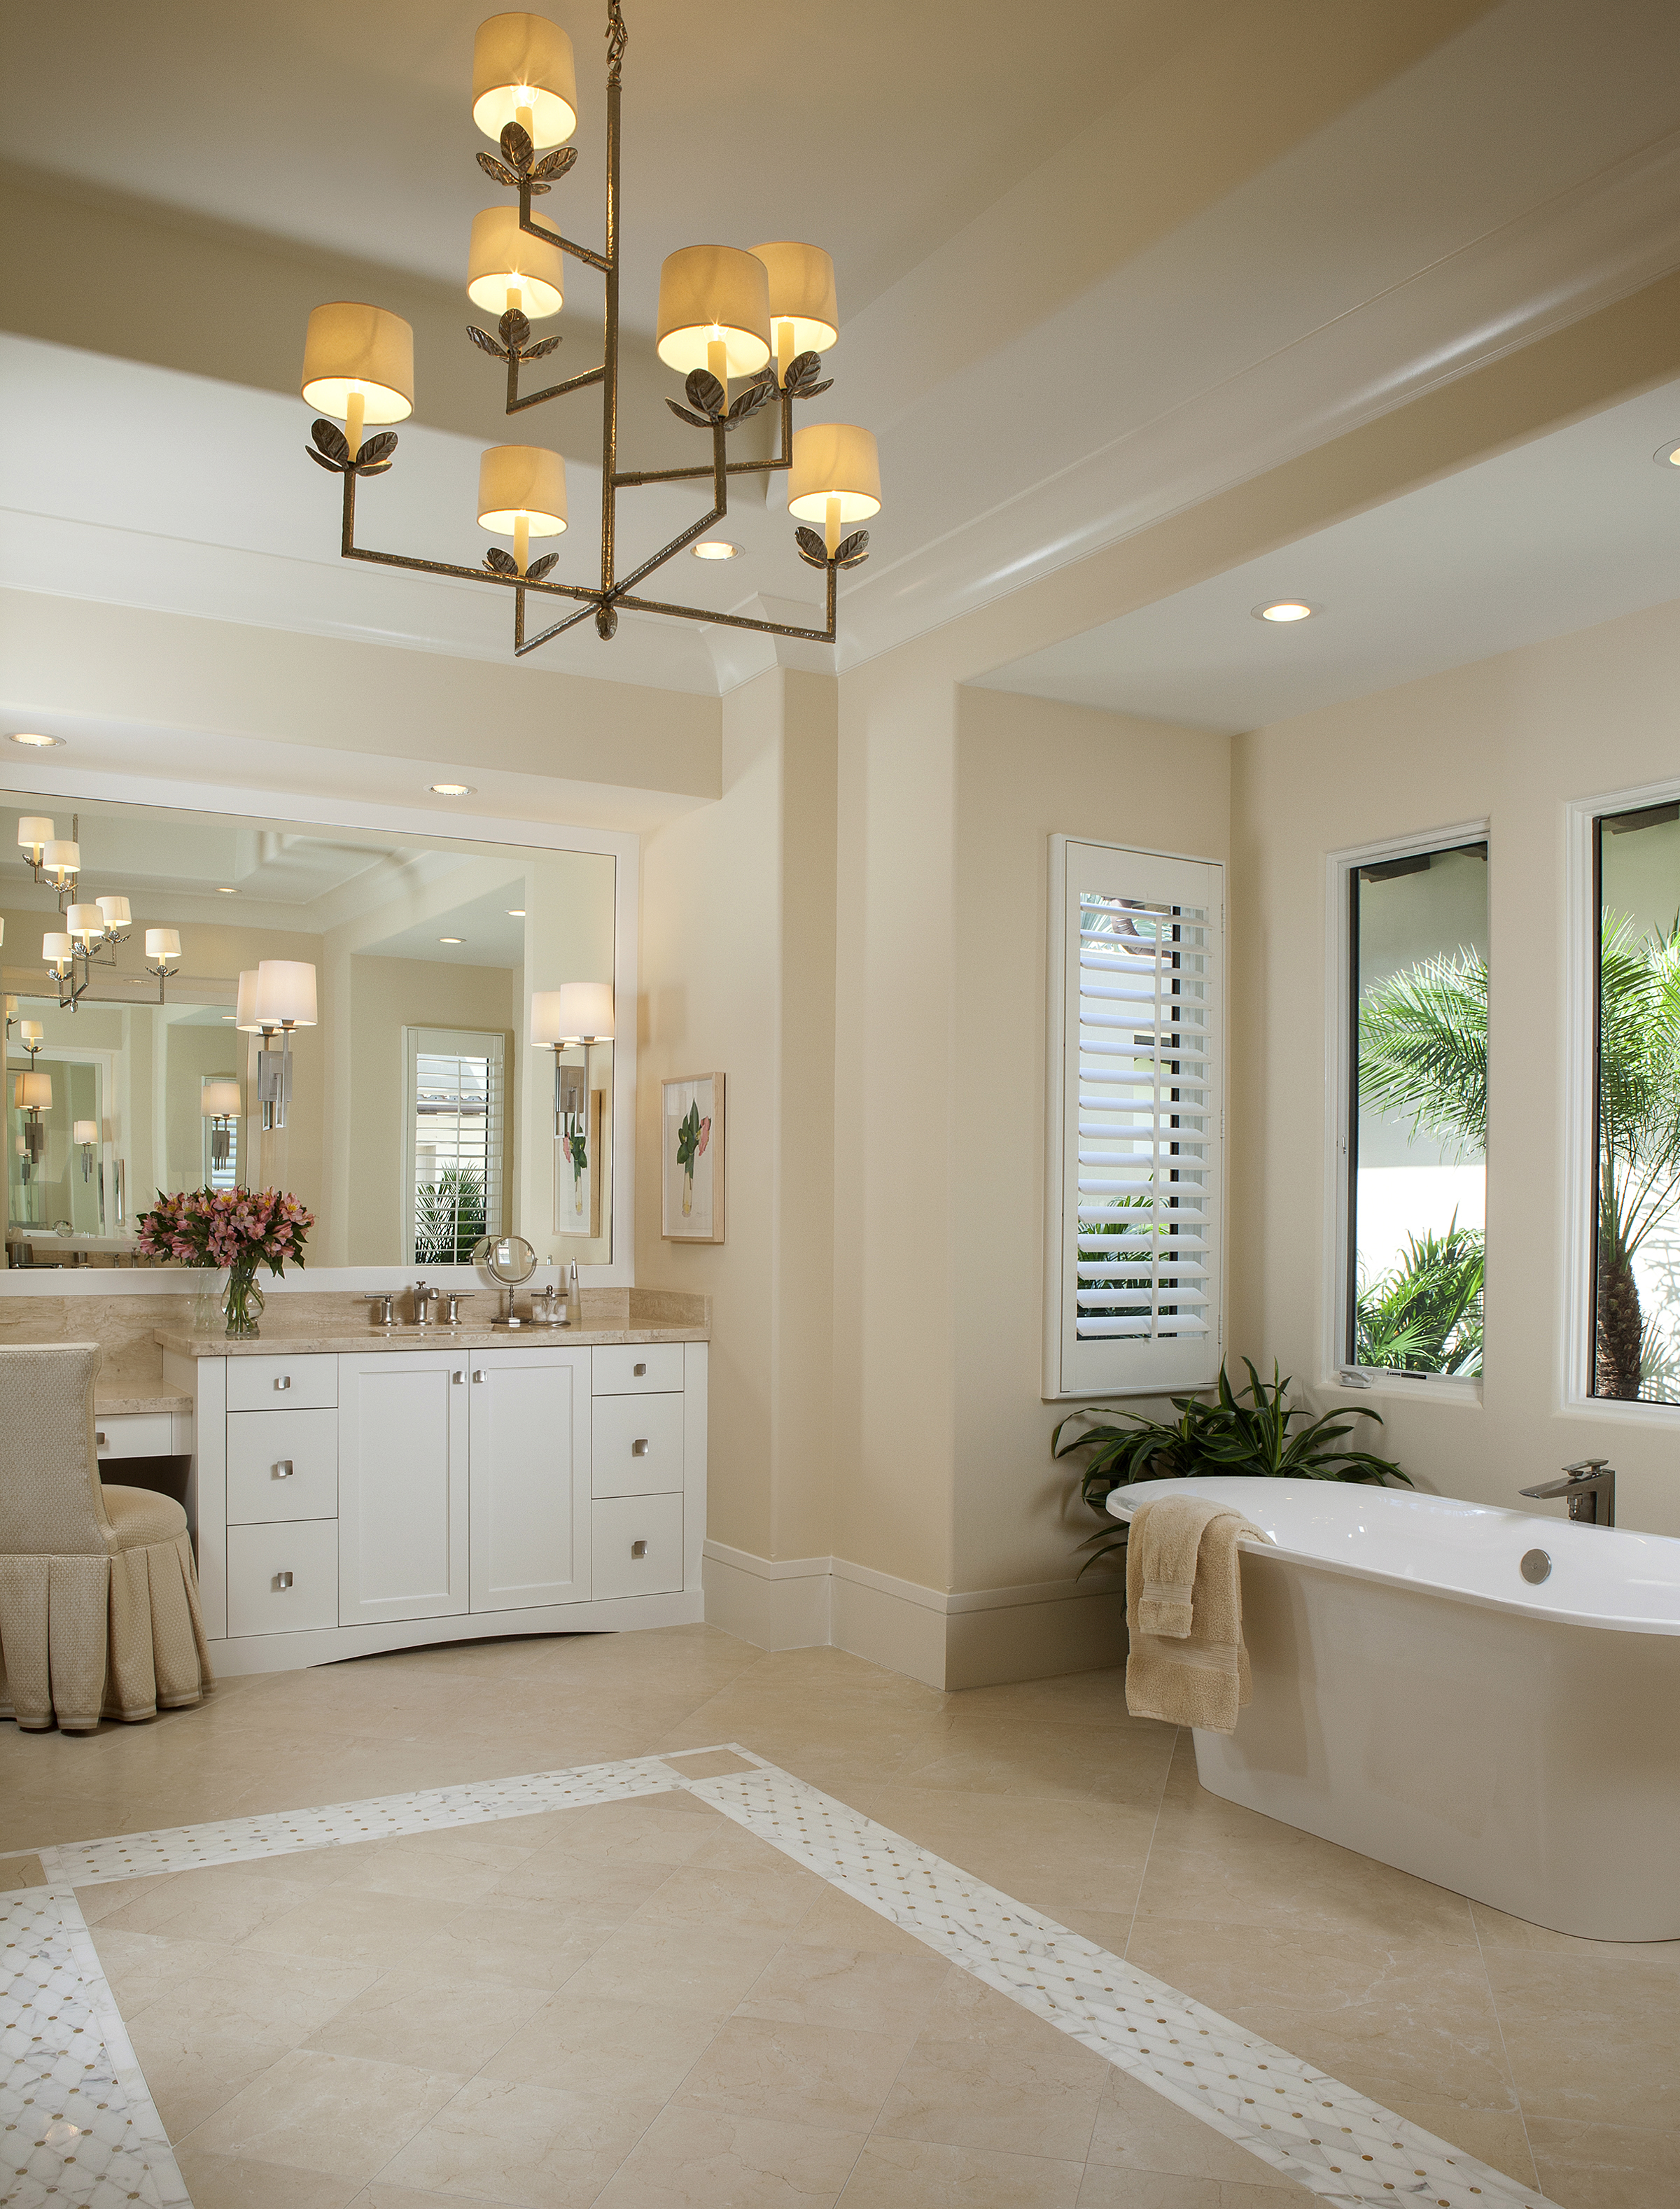 TROPICAL_RETREAT_MASTER_BATHROOM.jpg